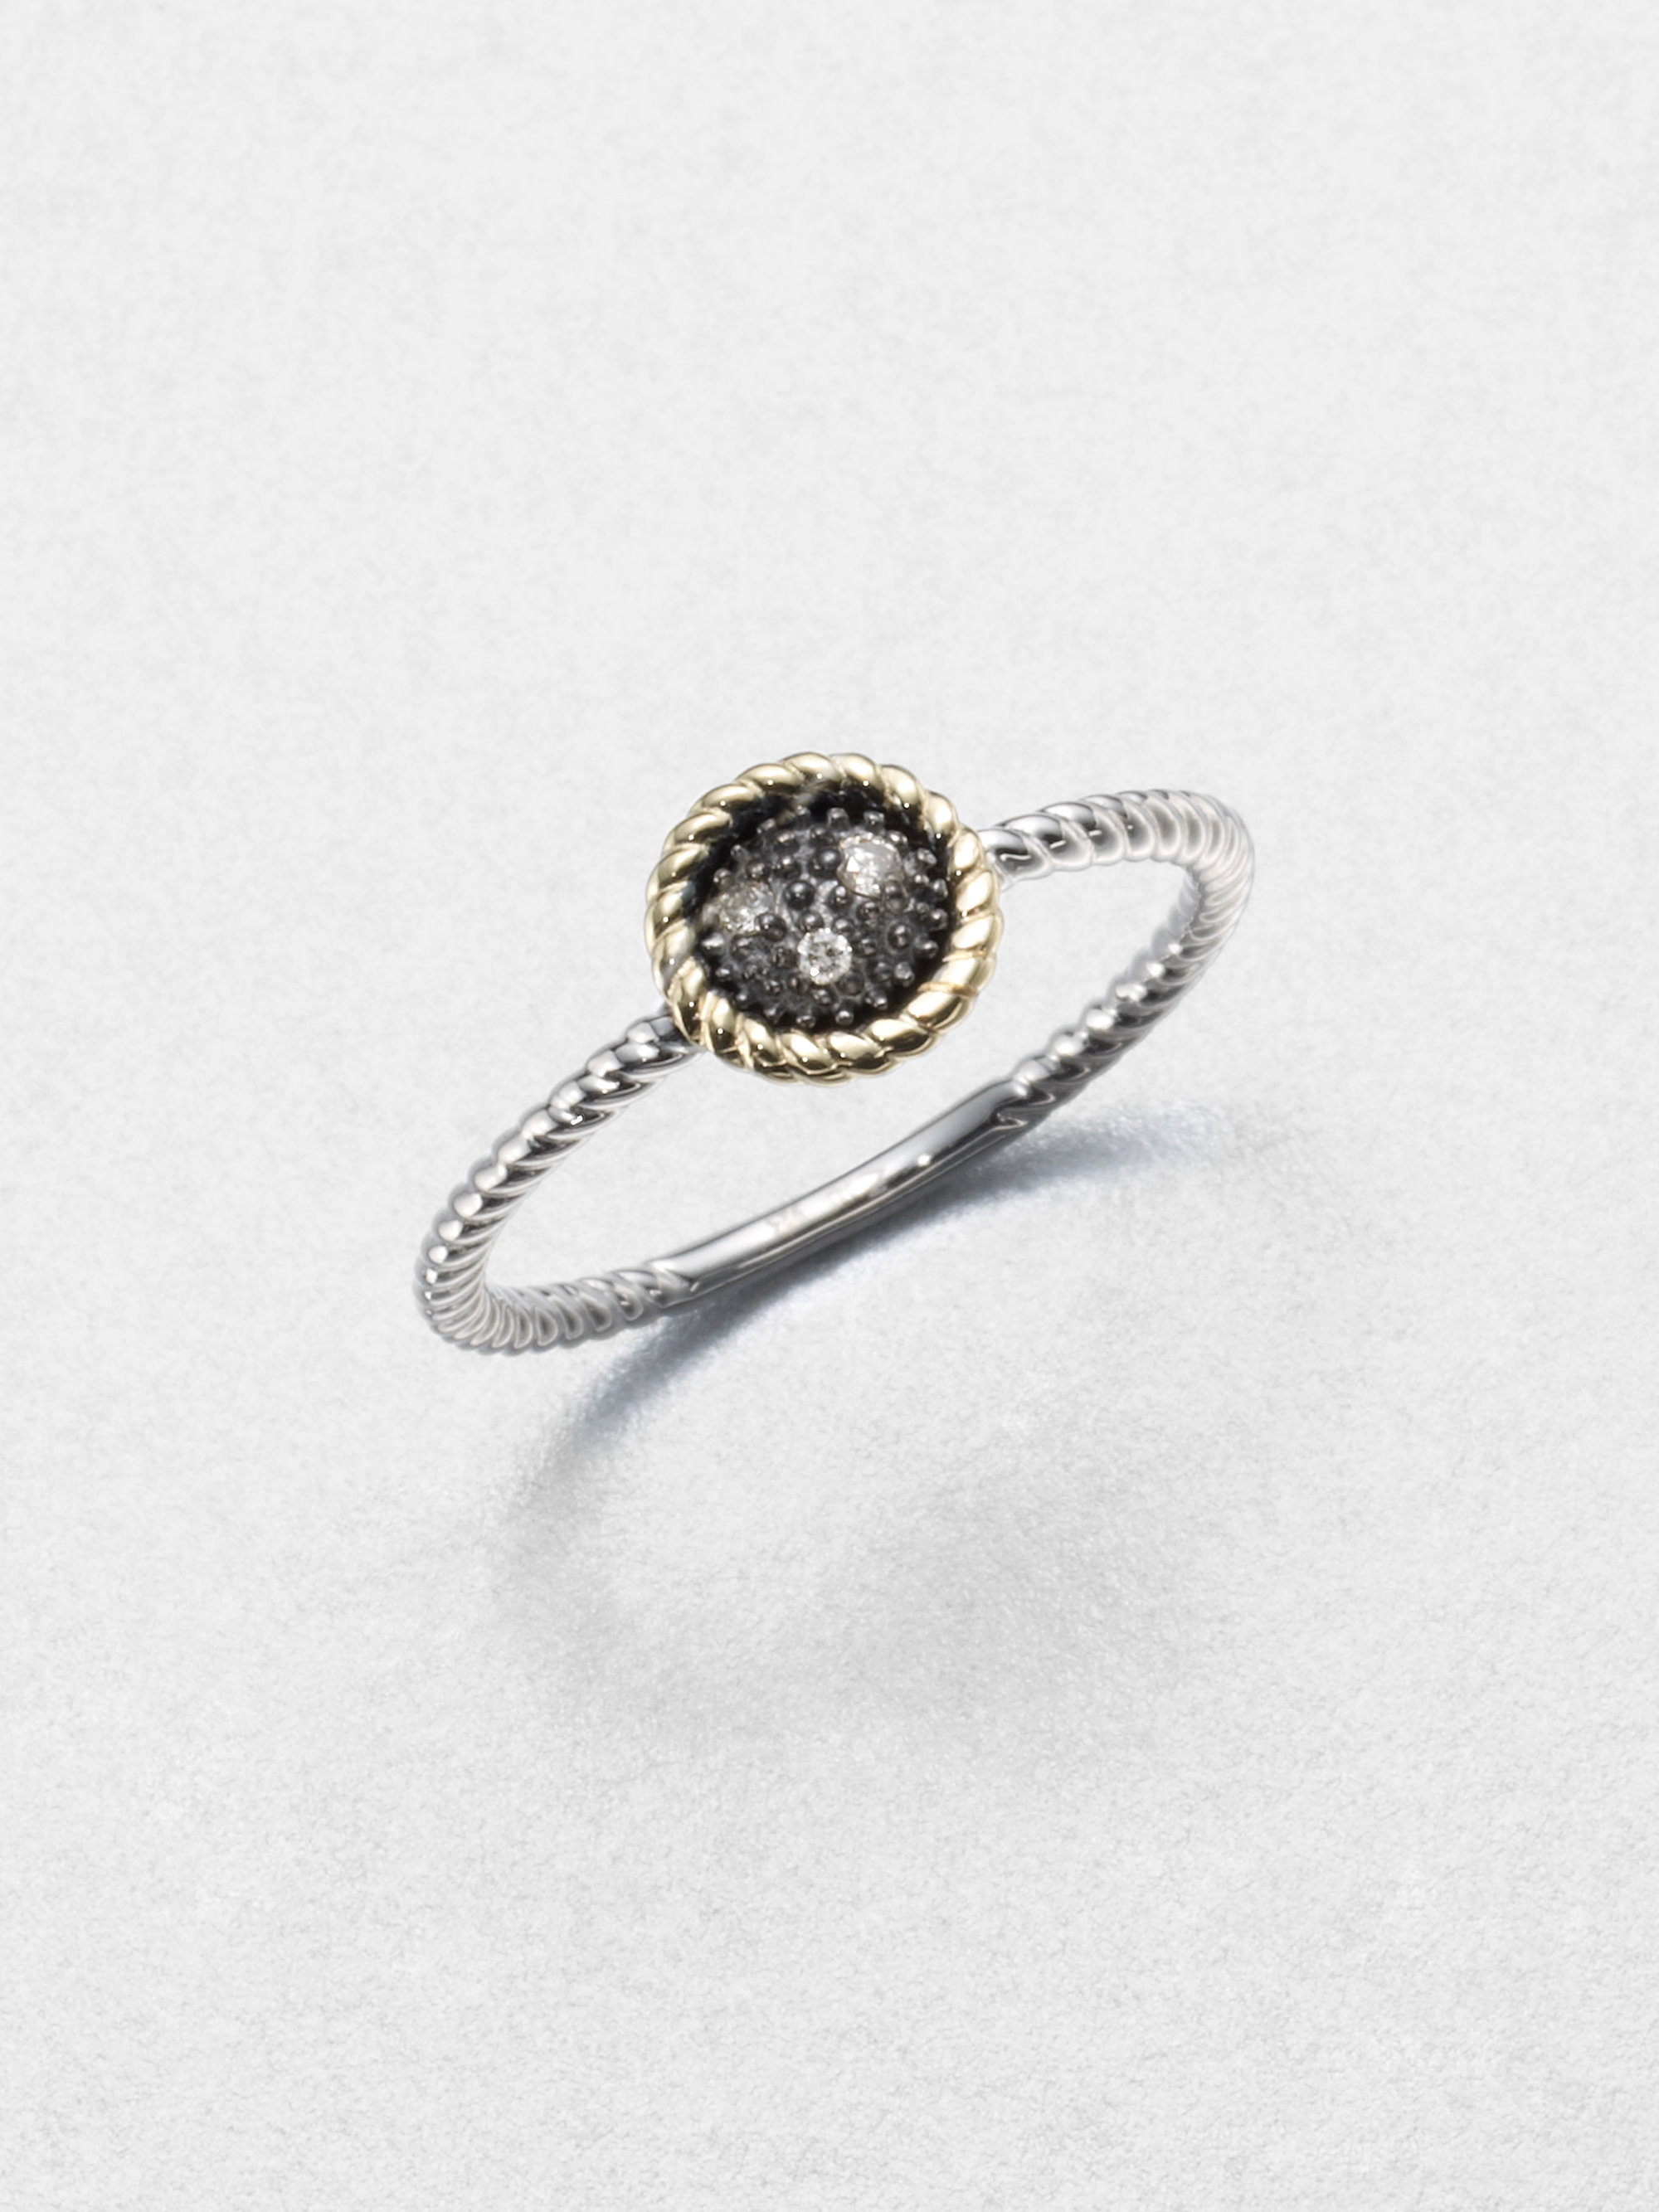 we pepper ring love traditional non rings au diamond com engagement unique handcrafted nouba default black salt c grey